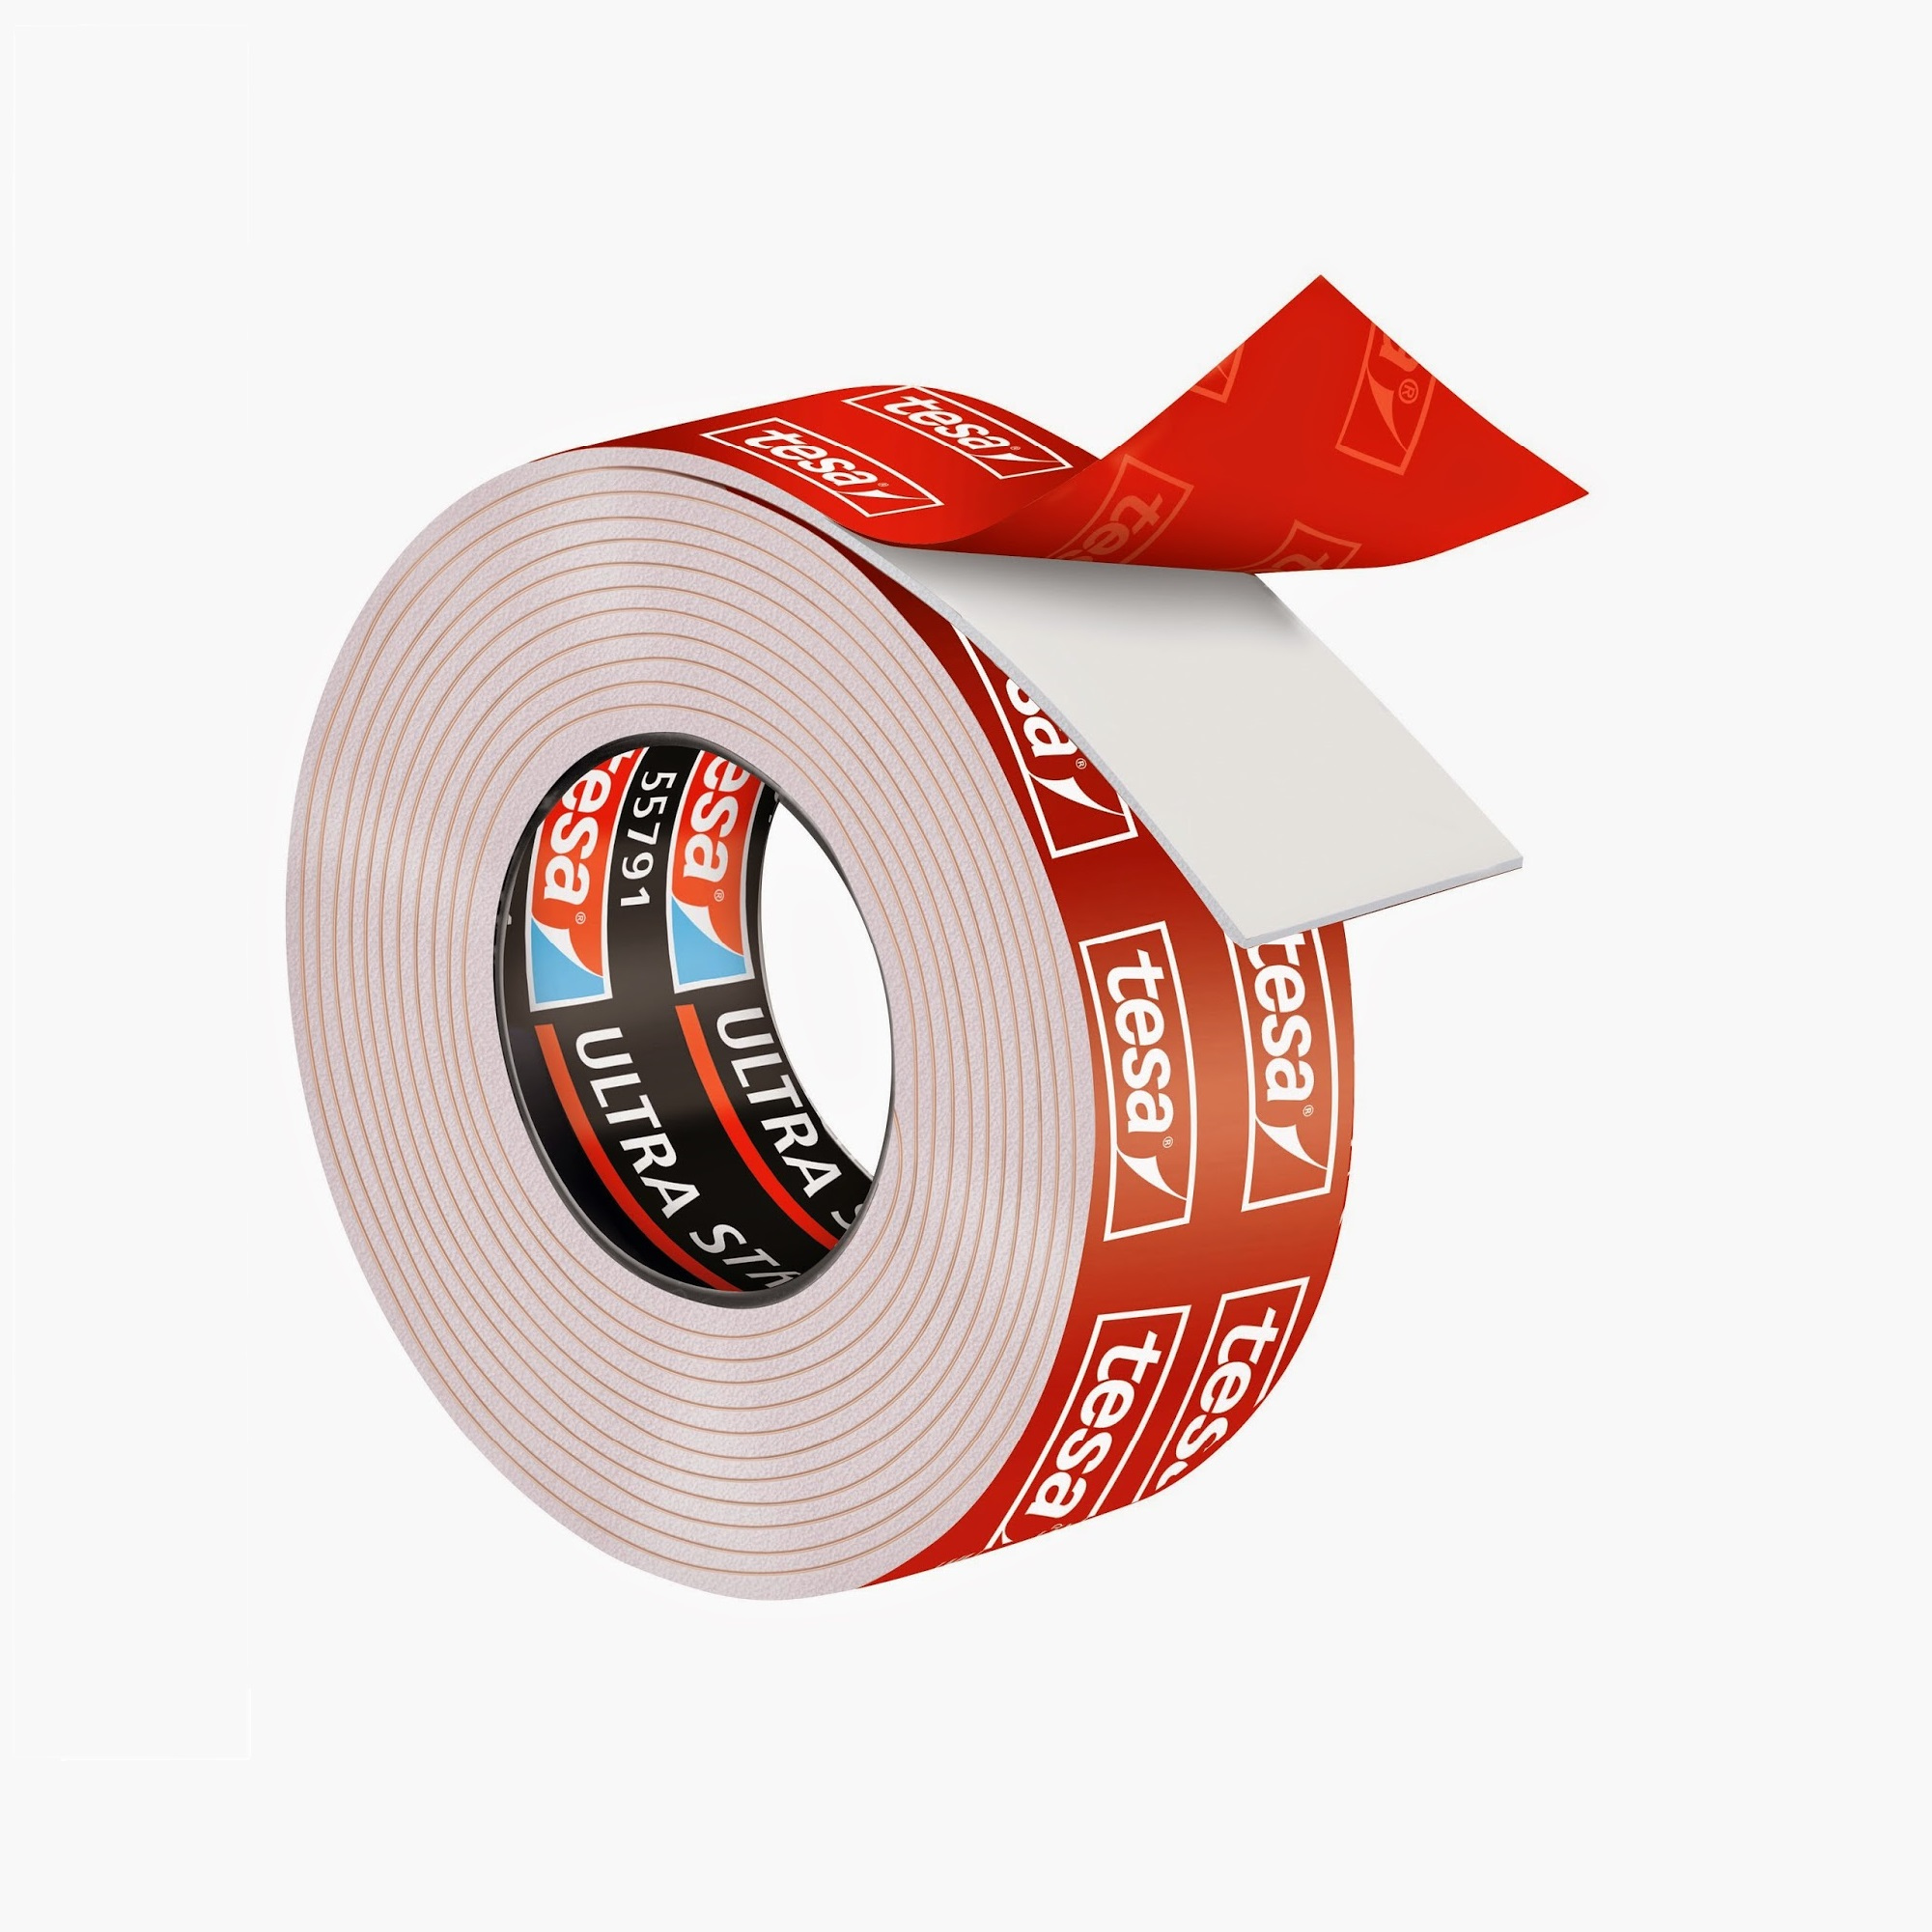 Tesa Powerbond Ultra Strong Nastro Biadesivo Tesa Powerbond Extraforte 1,5 M X 19 Mm